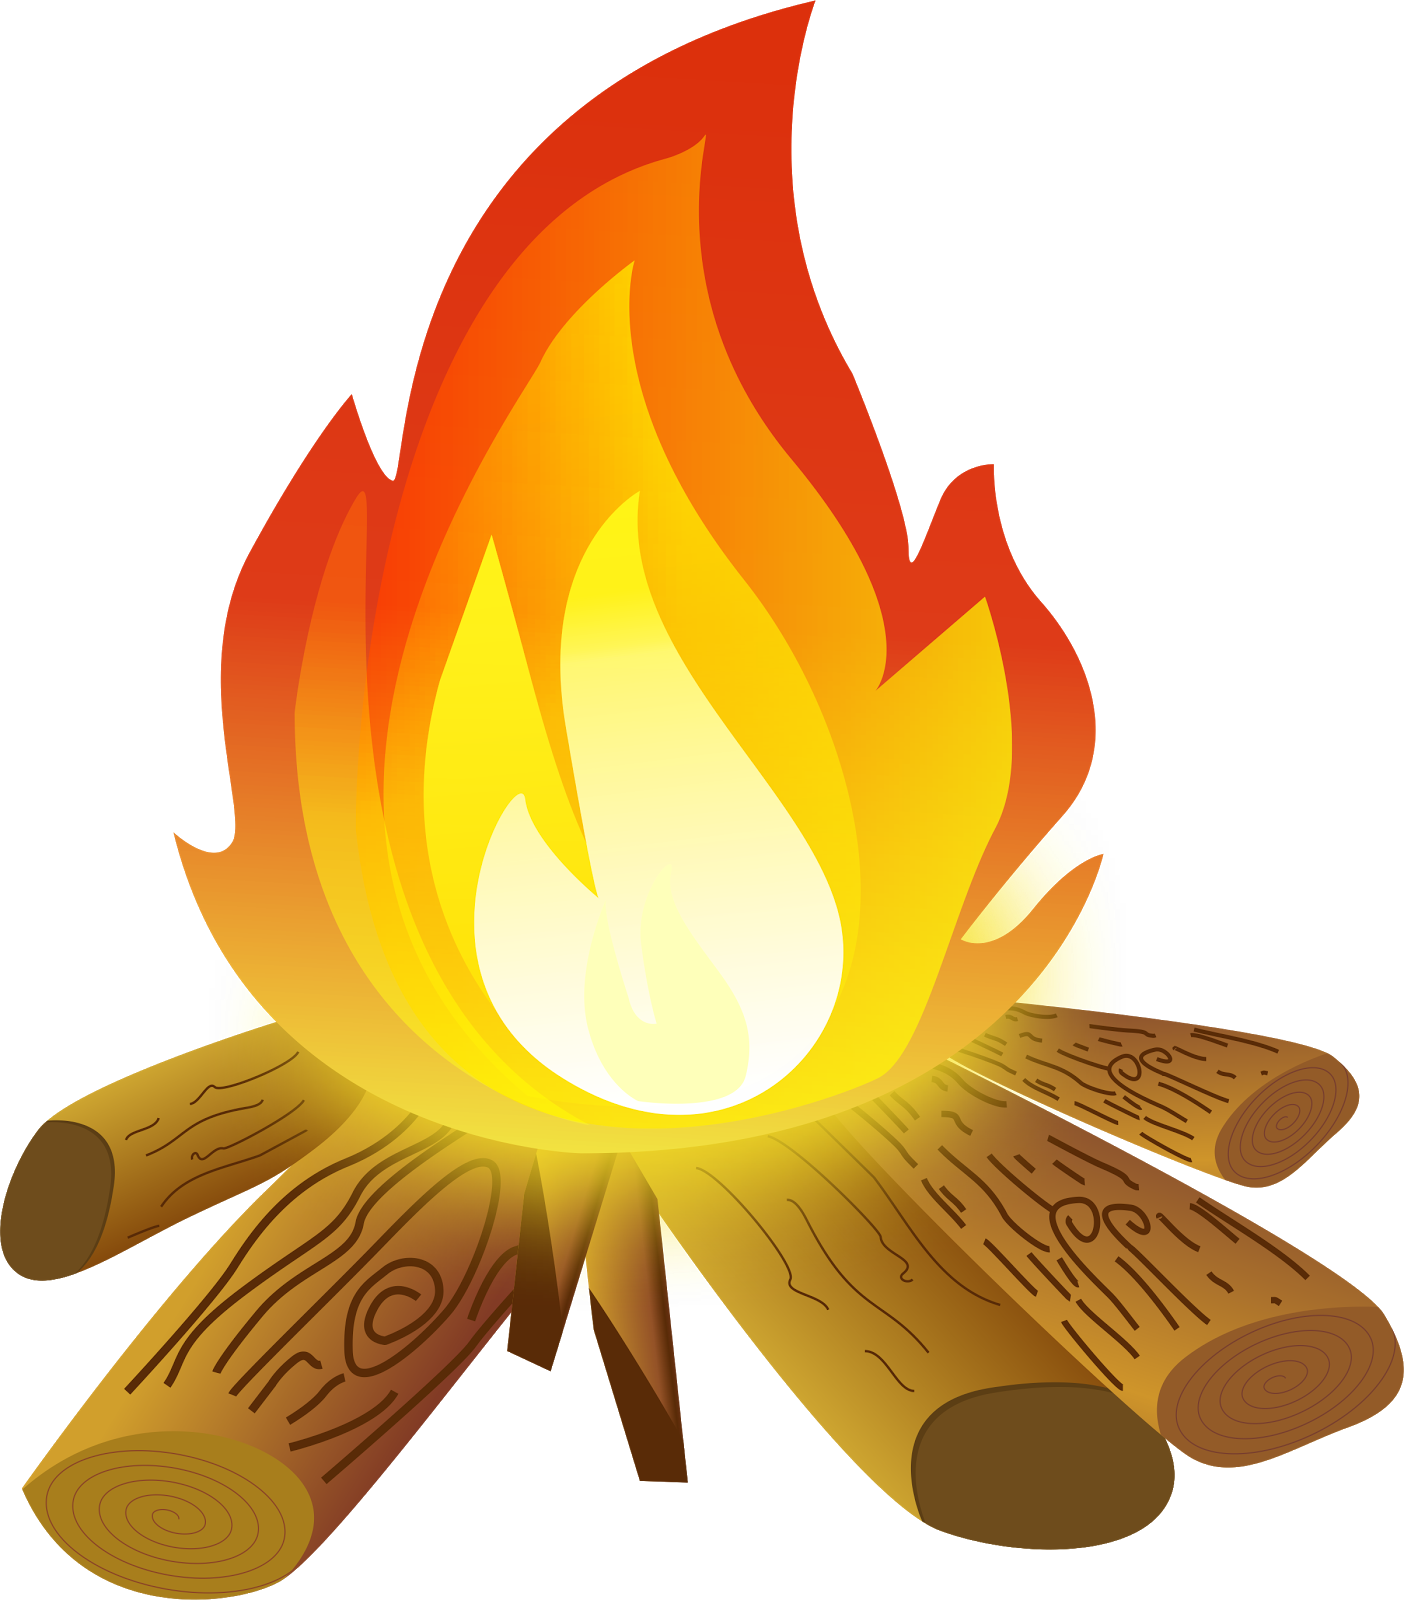 Bonfire Fire, Fire, Bonfire, Flame Png Image And Clipart image #47552